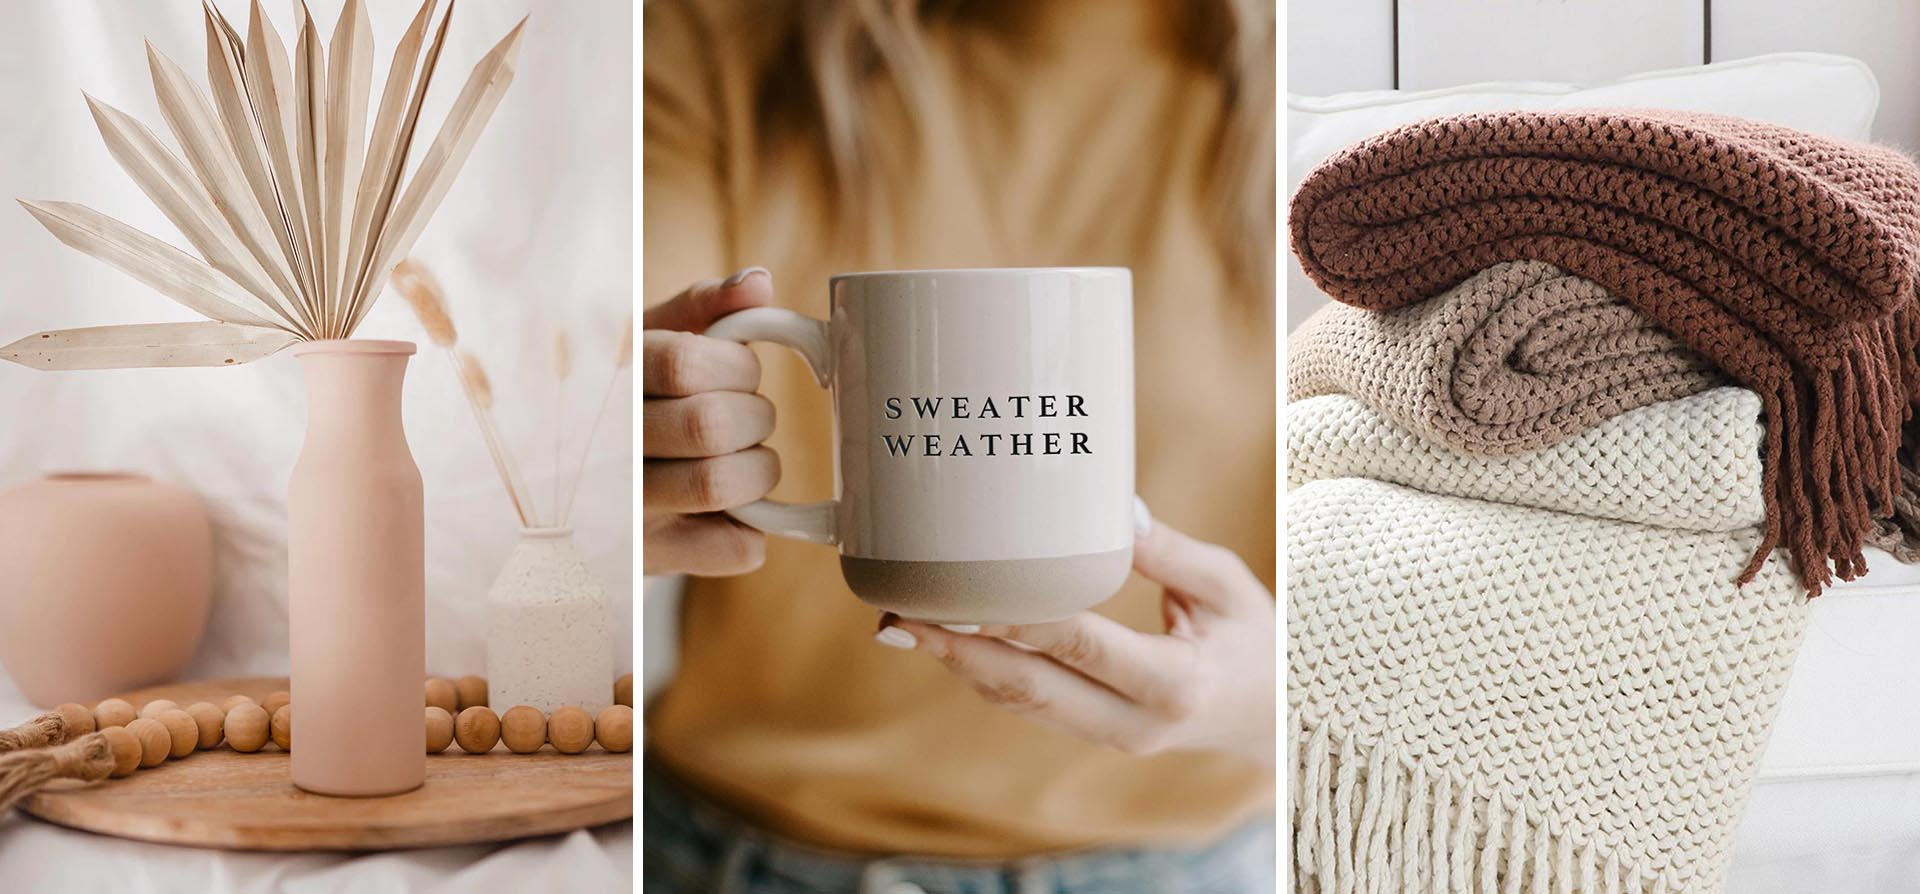 Warm tones, cozy materials, and matte finishes are just a few of the design elements in these modern fall decor pieces.